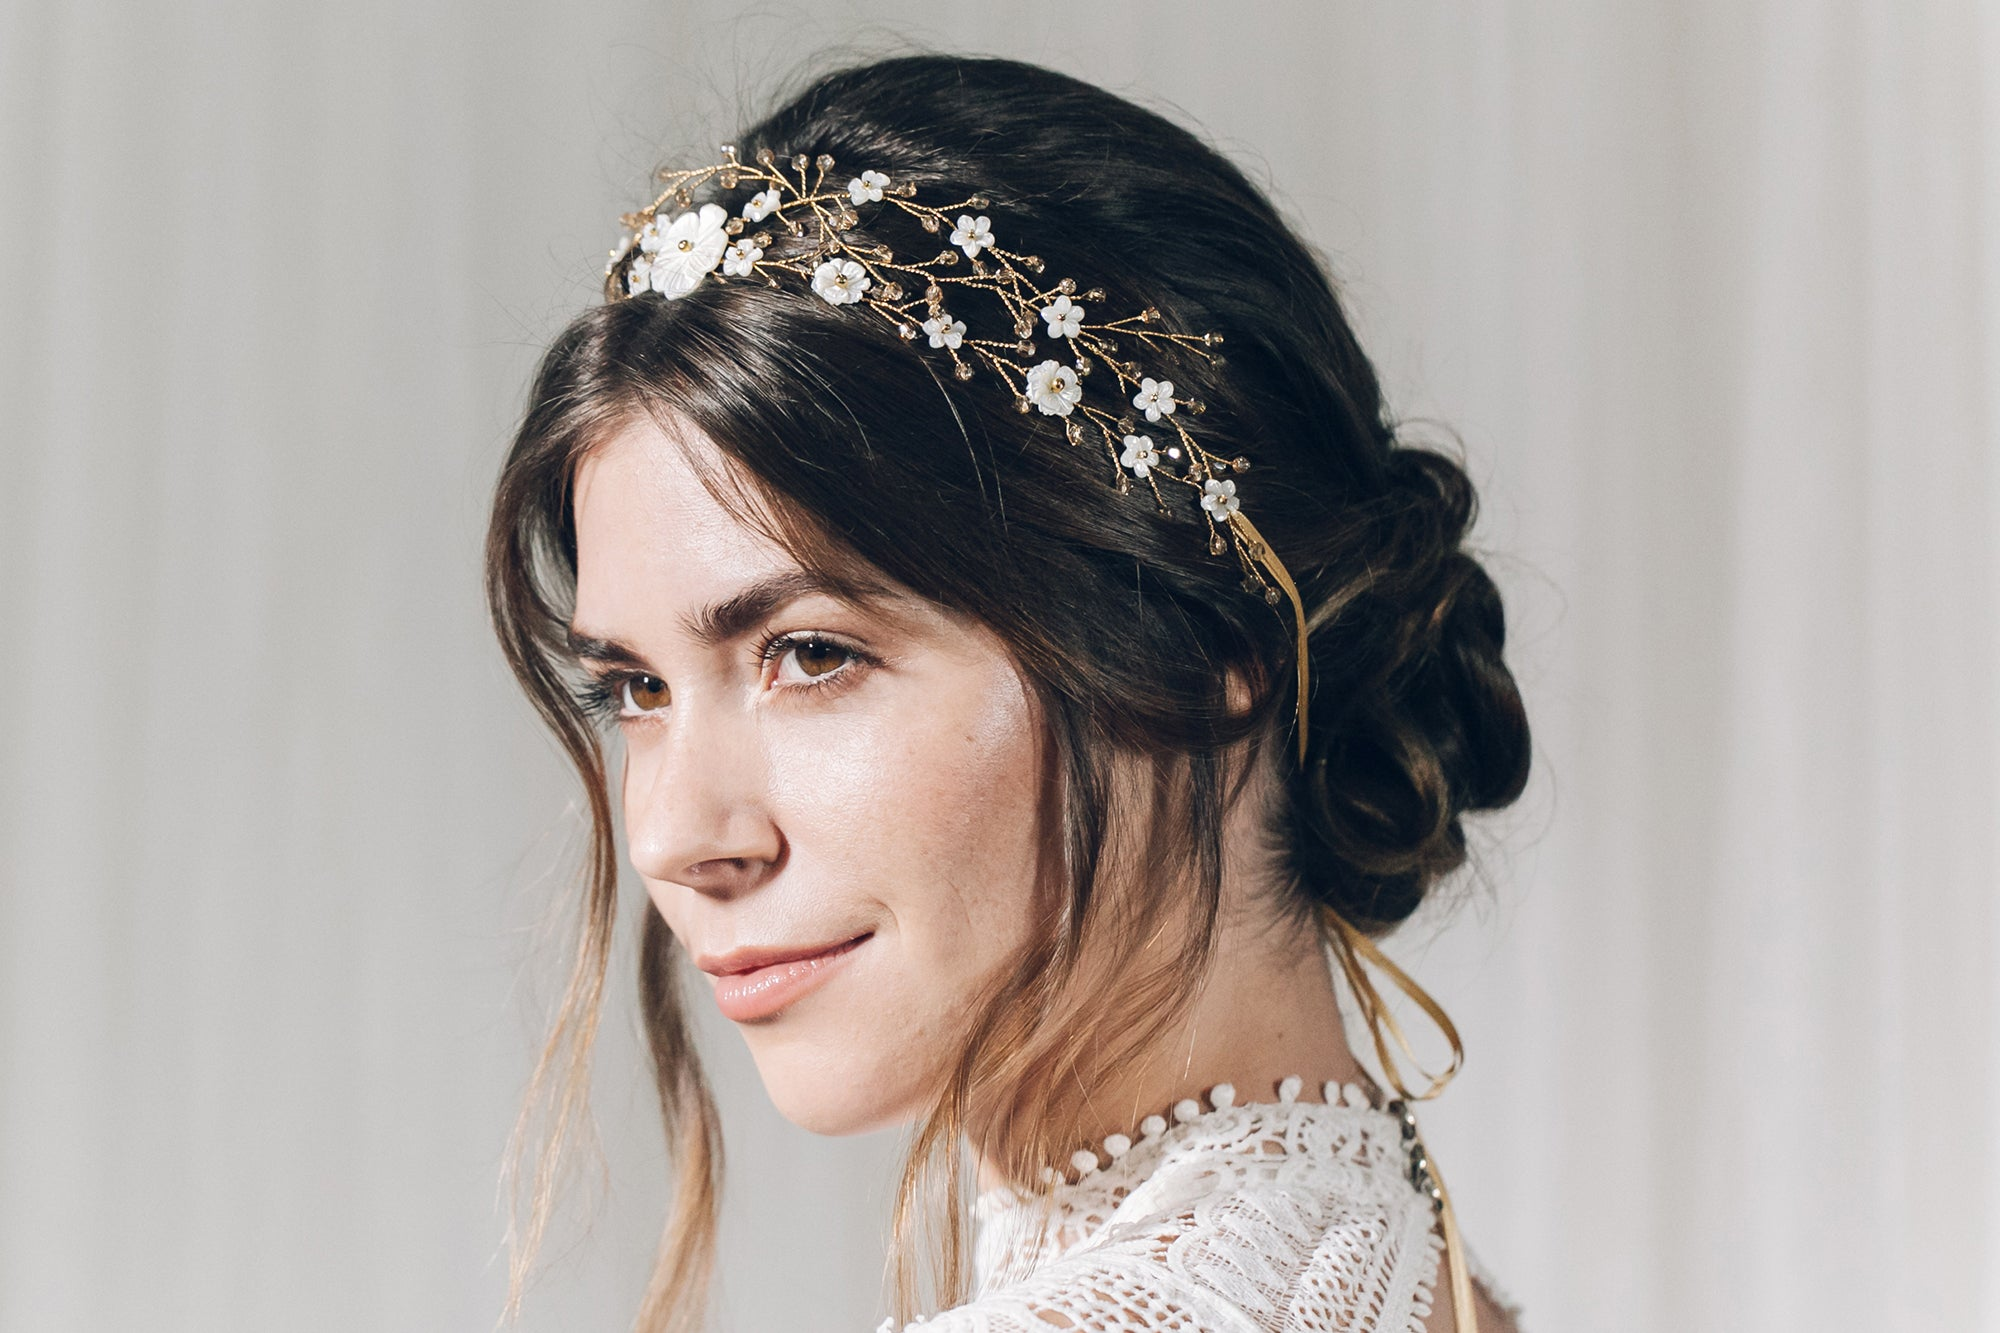 Gold mother of pearl floral crystal wedding headband hairvine tiara with ribbon ties